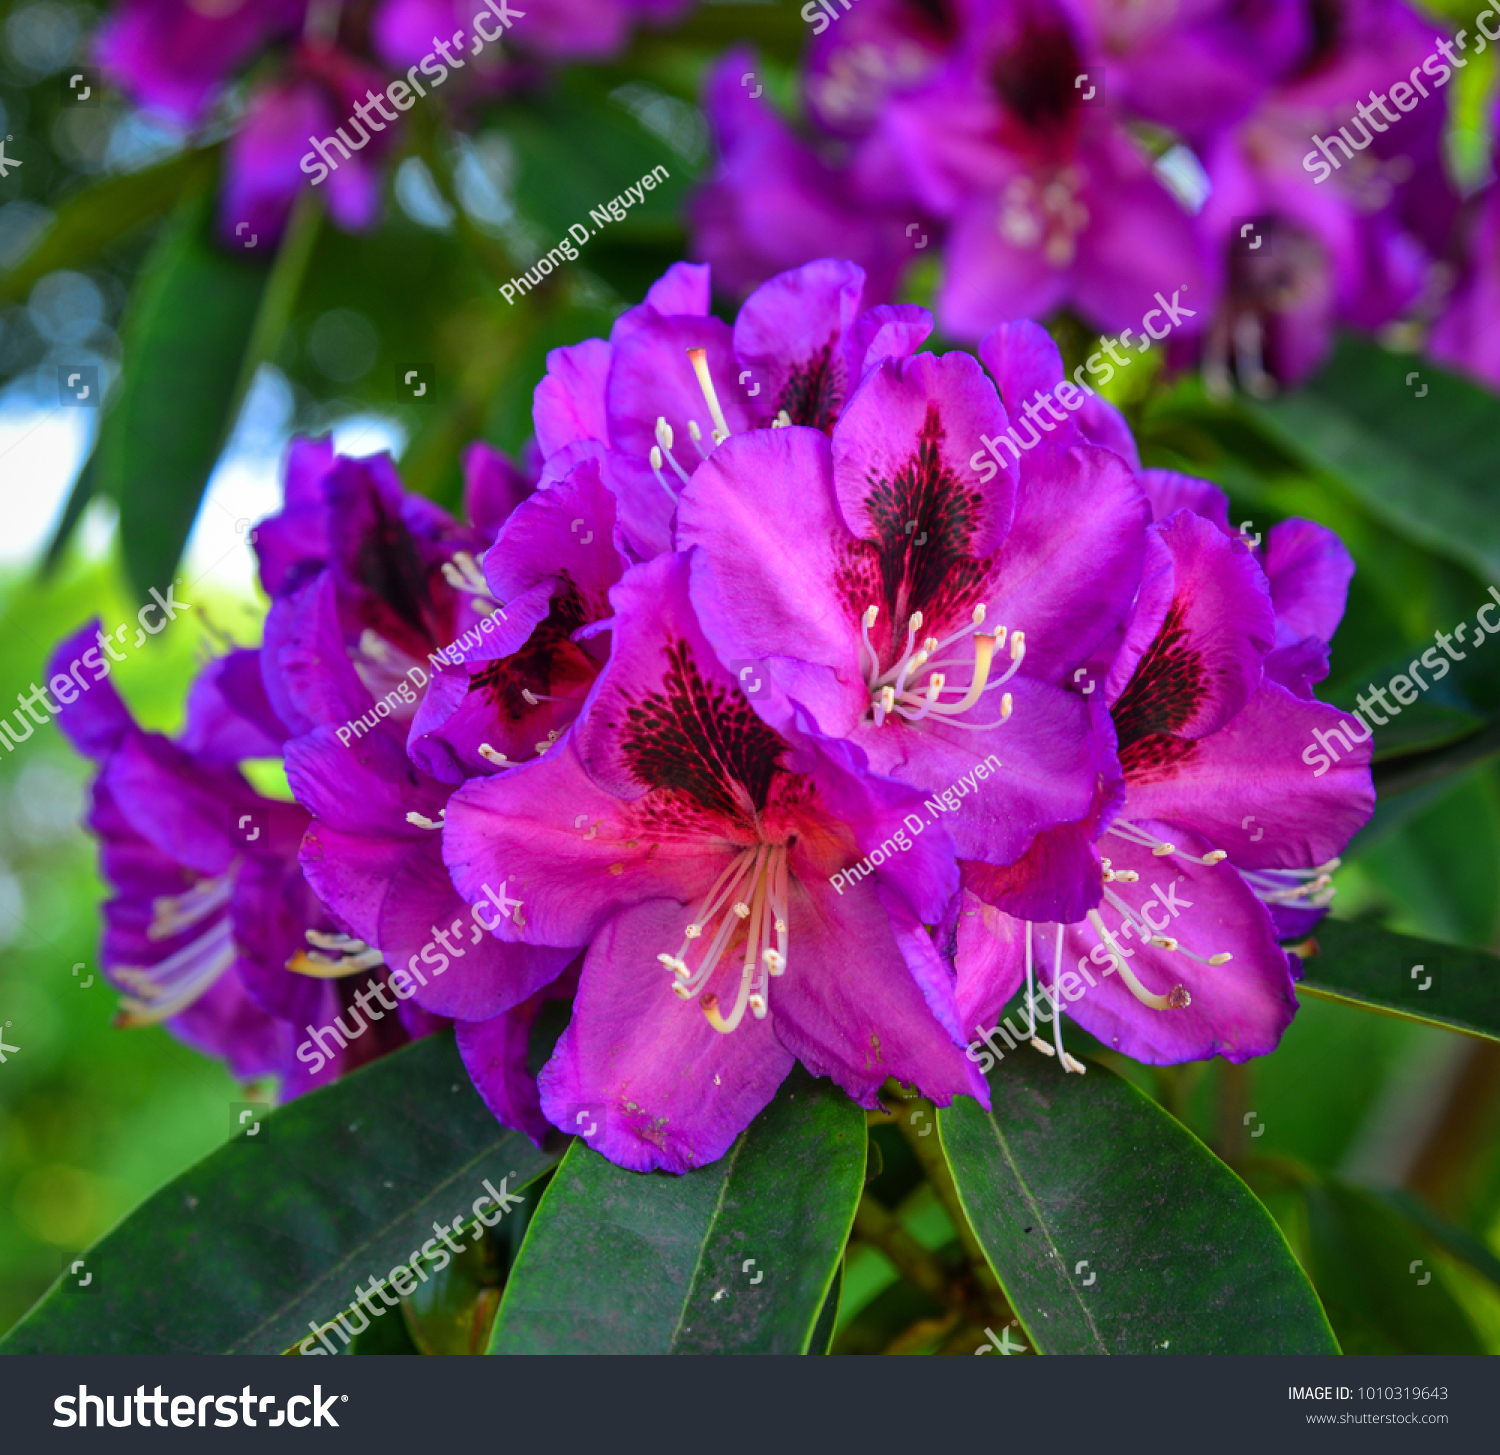 Flowering pink rhododendron bush with large blossoms ez canvas id 1010319643 mightylinksfo